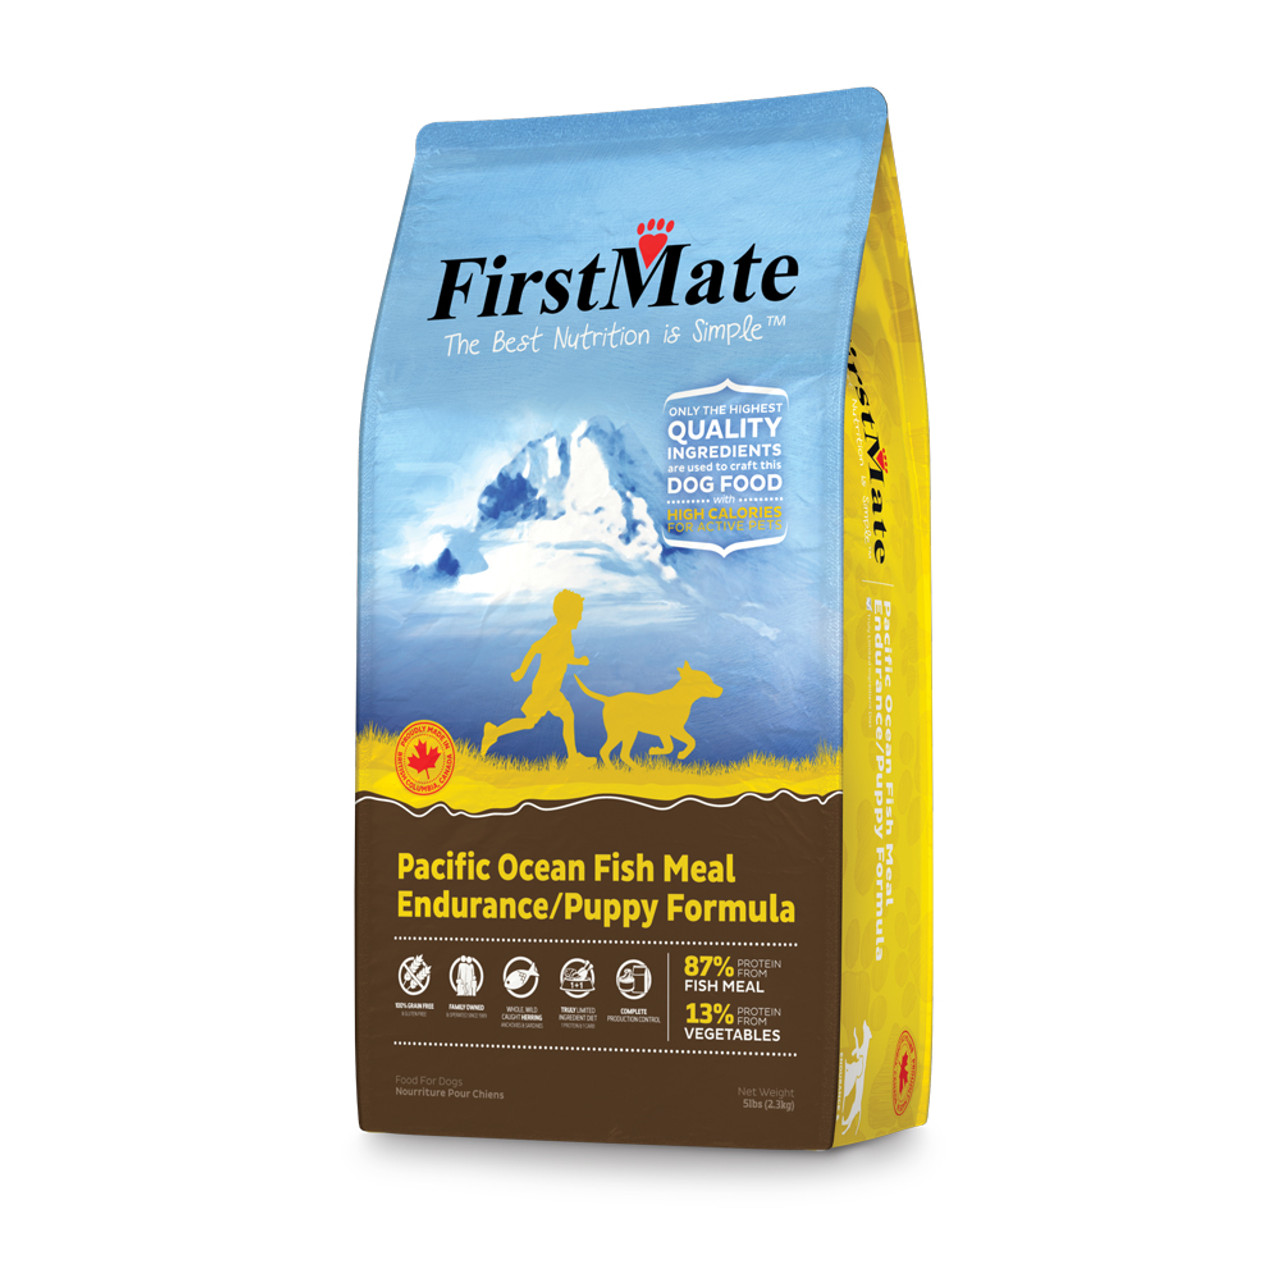 FirstMate Pacific Ocean Fish Meal Endurance/Puppy Formula Dry Dog Food